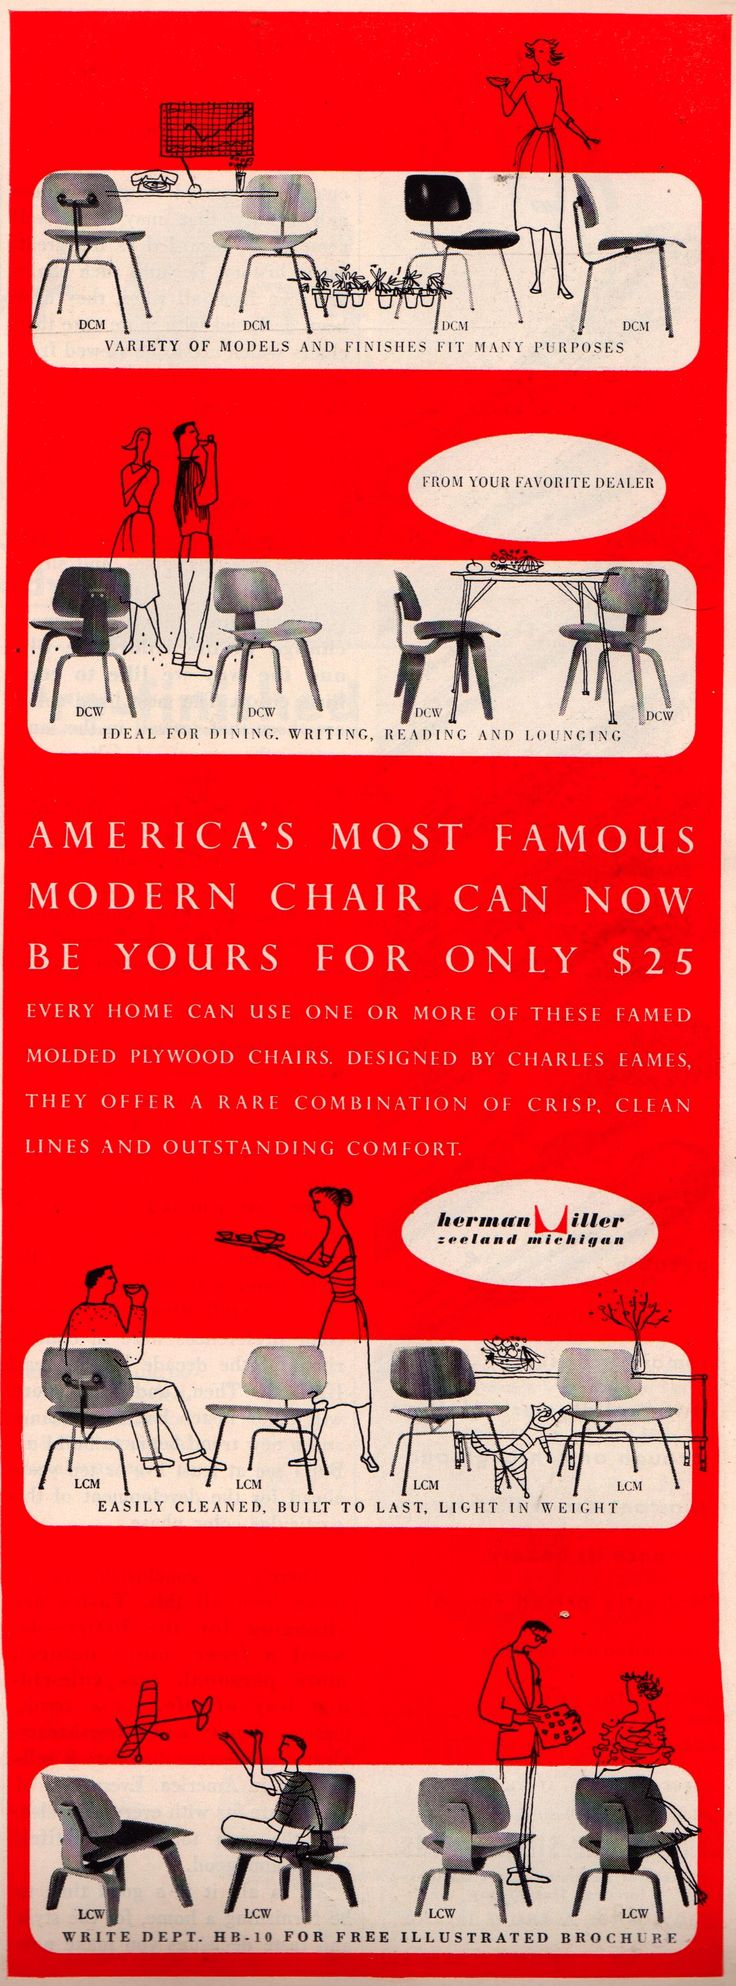 Herman Miller ad c.1952Print Ads, Chairs Heavens, Miller Ads, Modern Chairs, Eames Chairs, Graphics Historical, Charles Eames, Ray Eames, Herman Miller